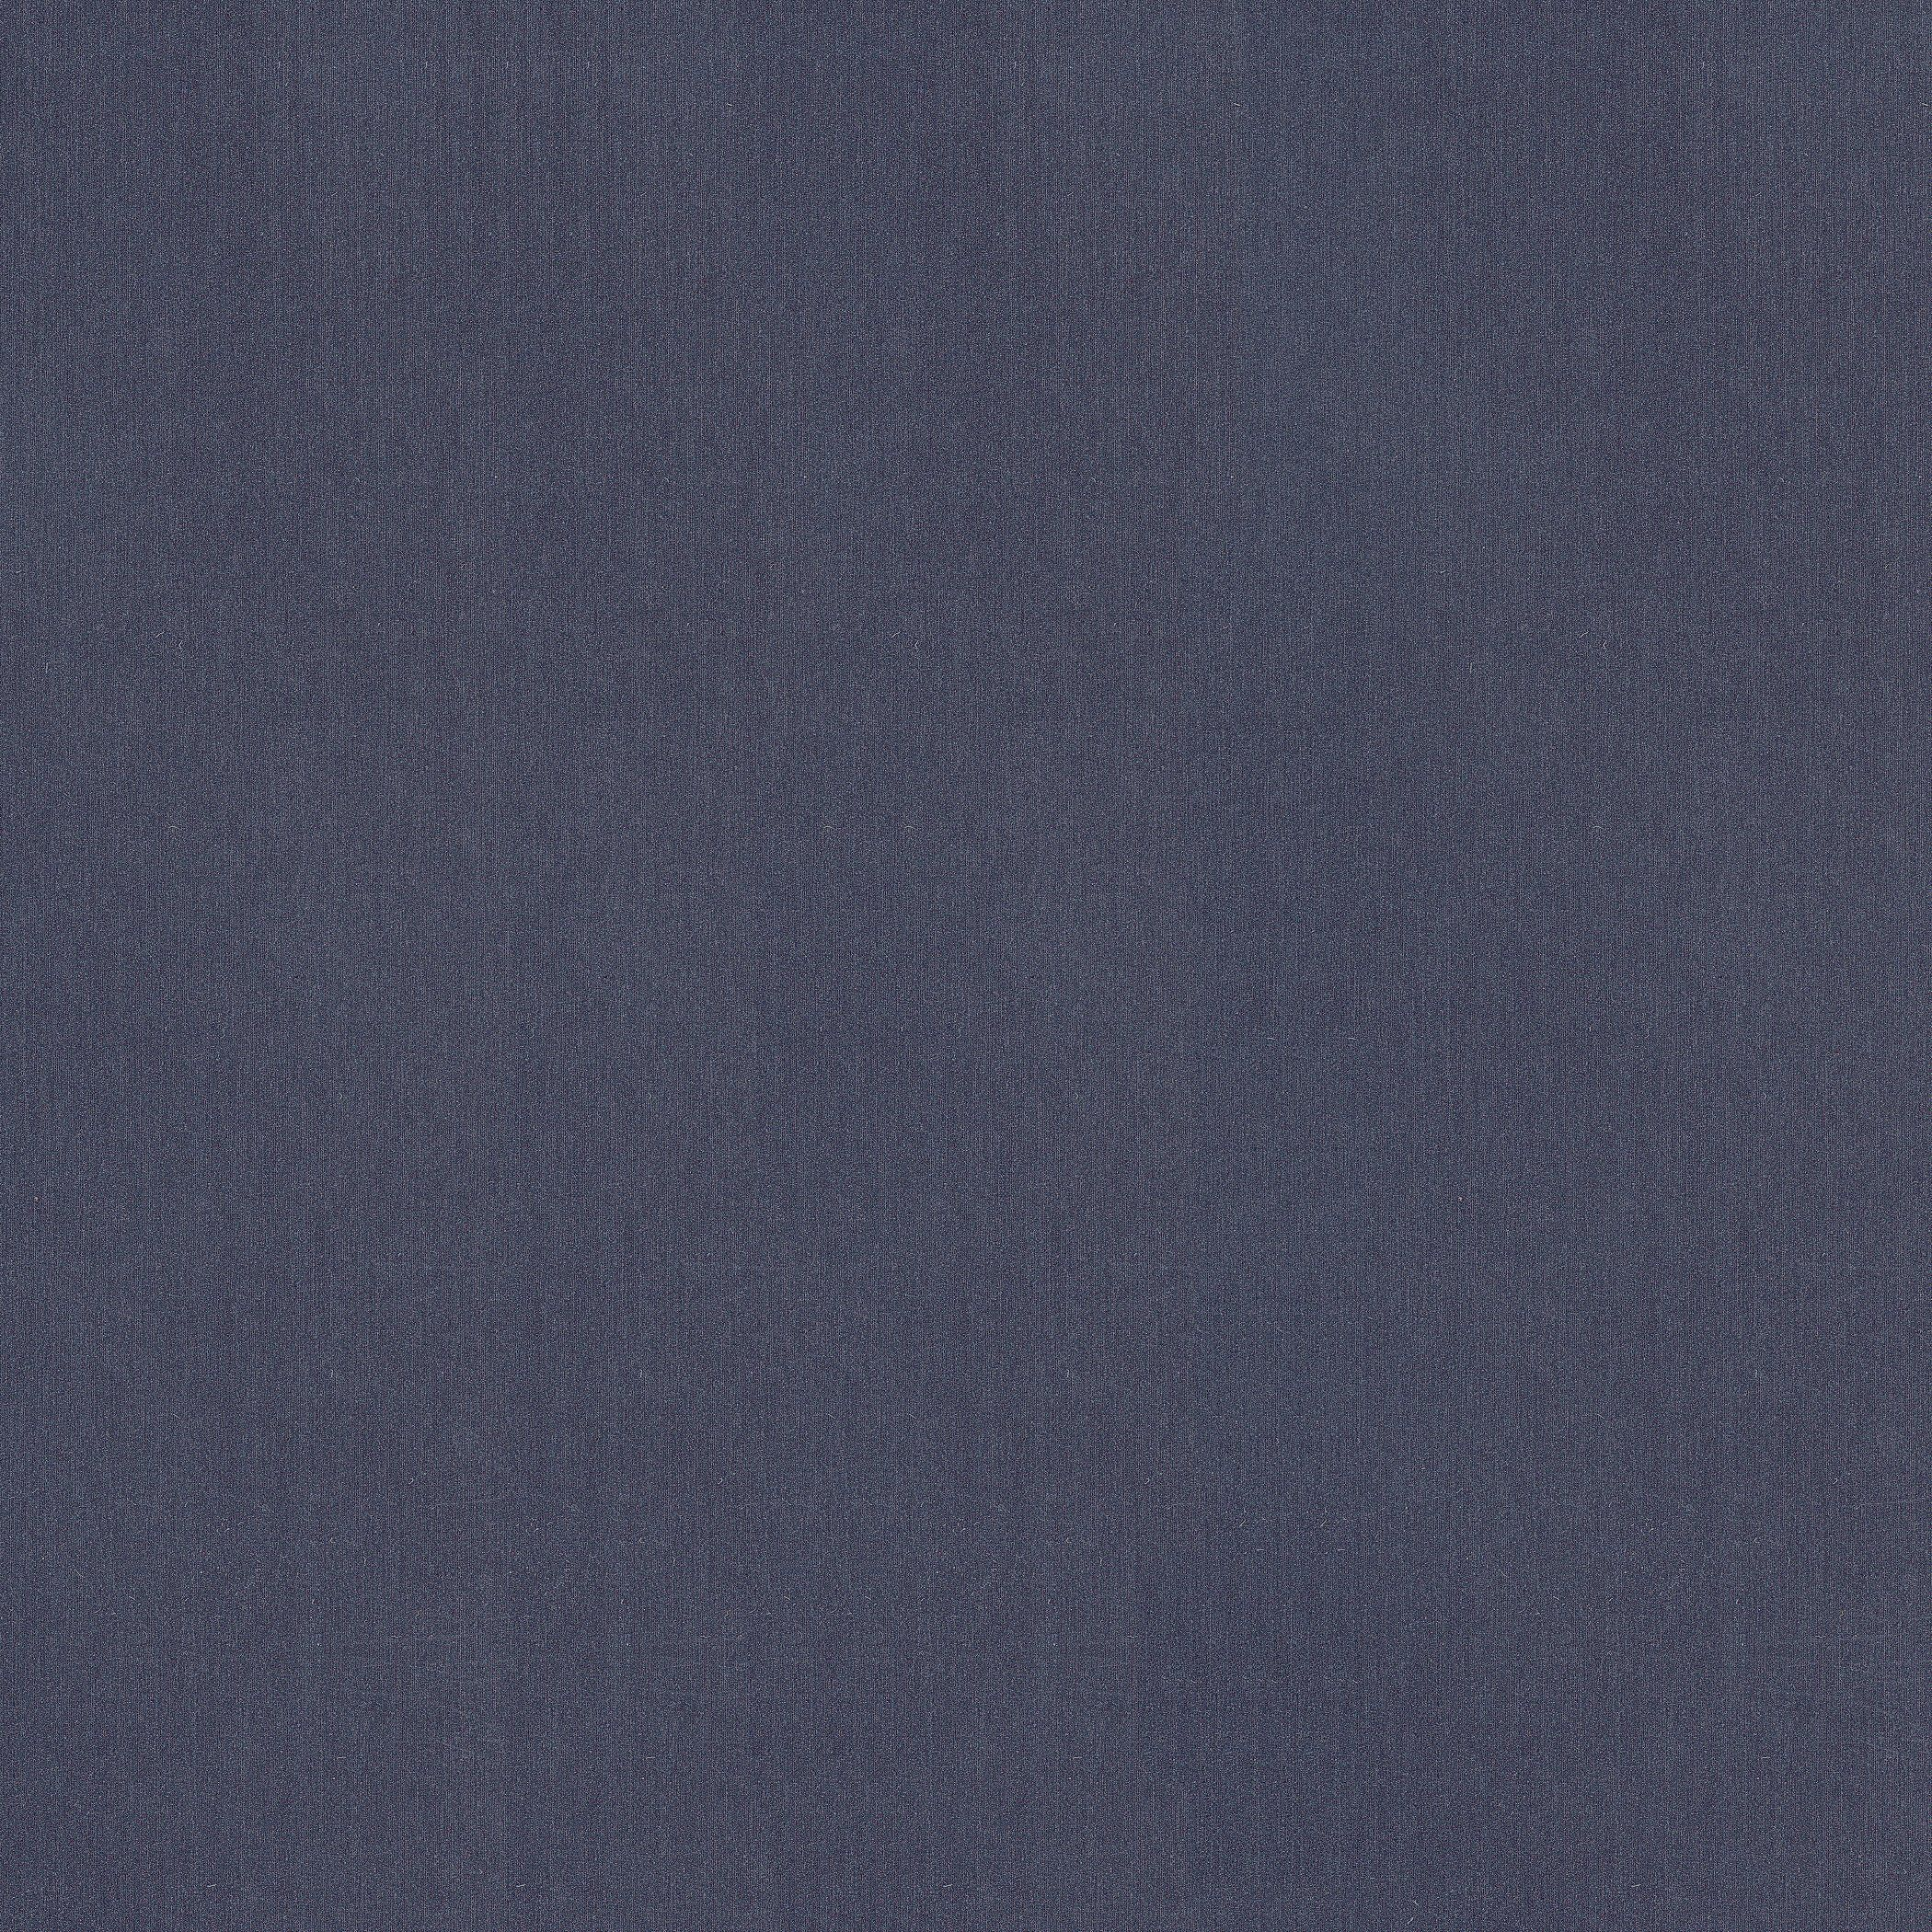 Titanium Blazer Blue Royal Navy Solid Faux Leather Upholstery Fabric